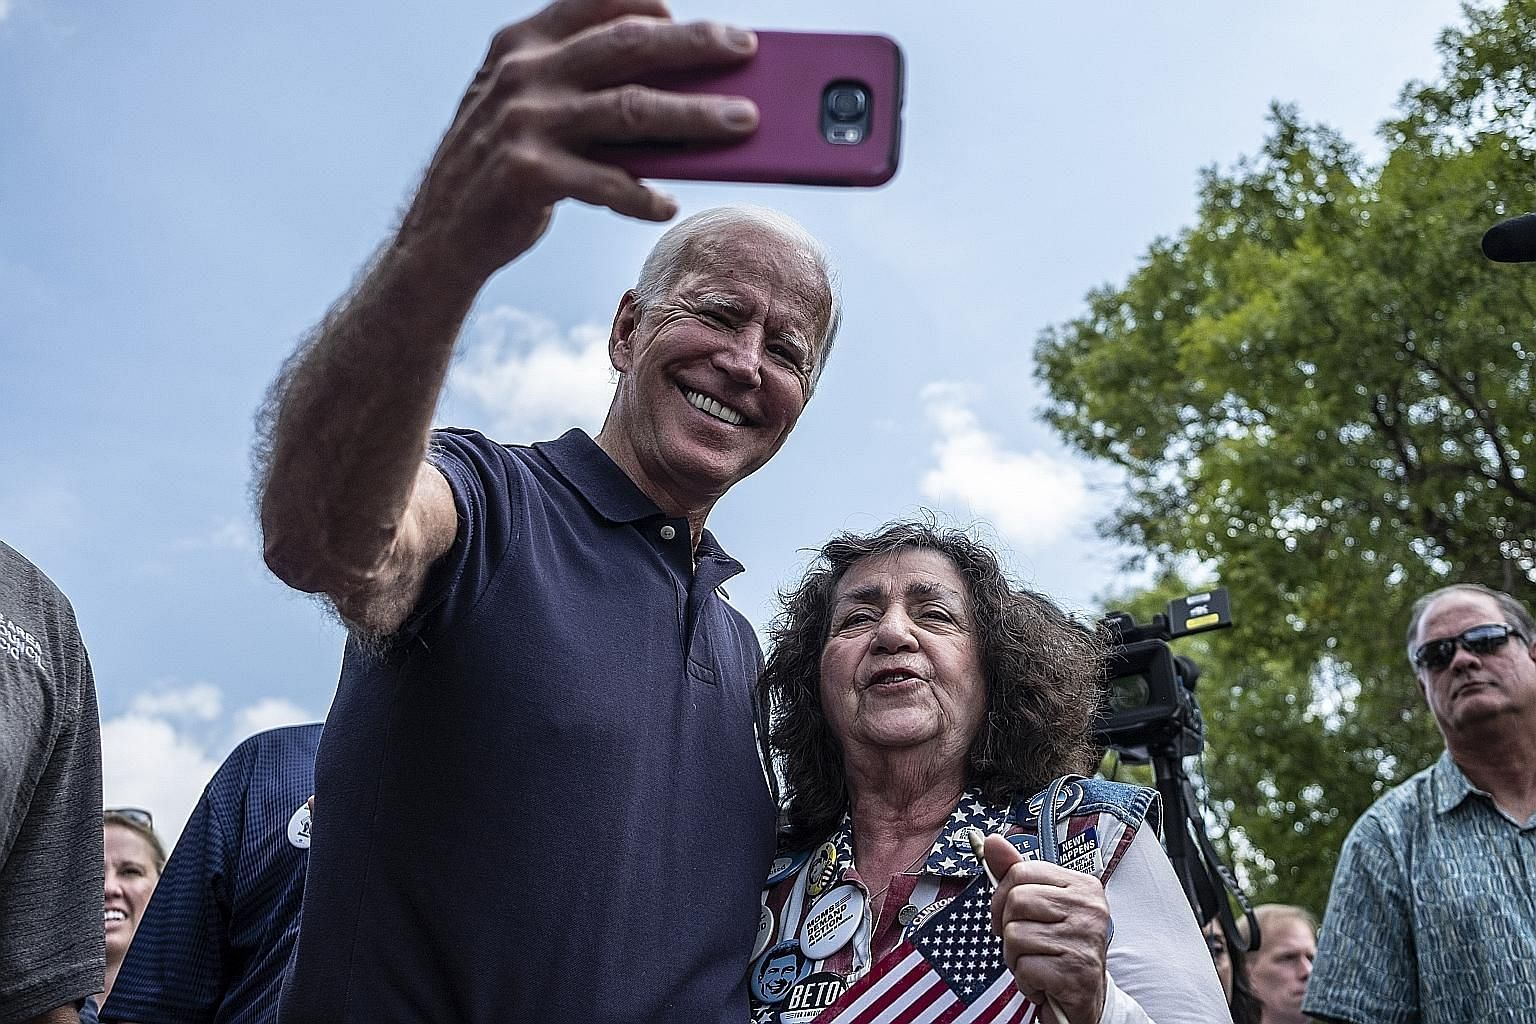 Mr Joe Biden with an attendee at a Labour Day picnic in Cedar Rapids, Iowa, on Sept 2. Despite leading in polls, he has been looking more fallible lately. PHOTO: NYTIMES